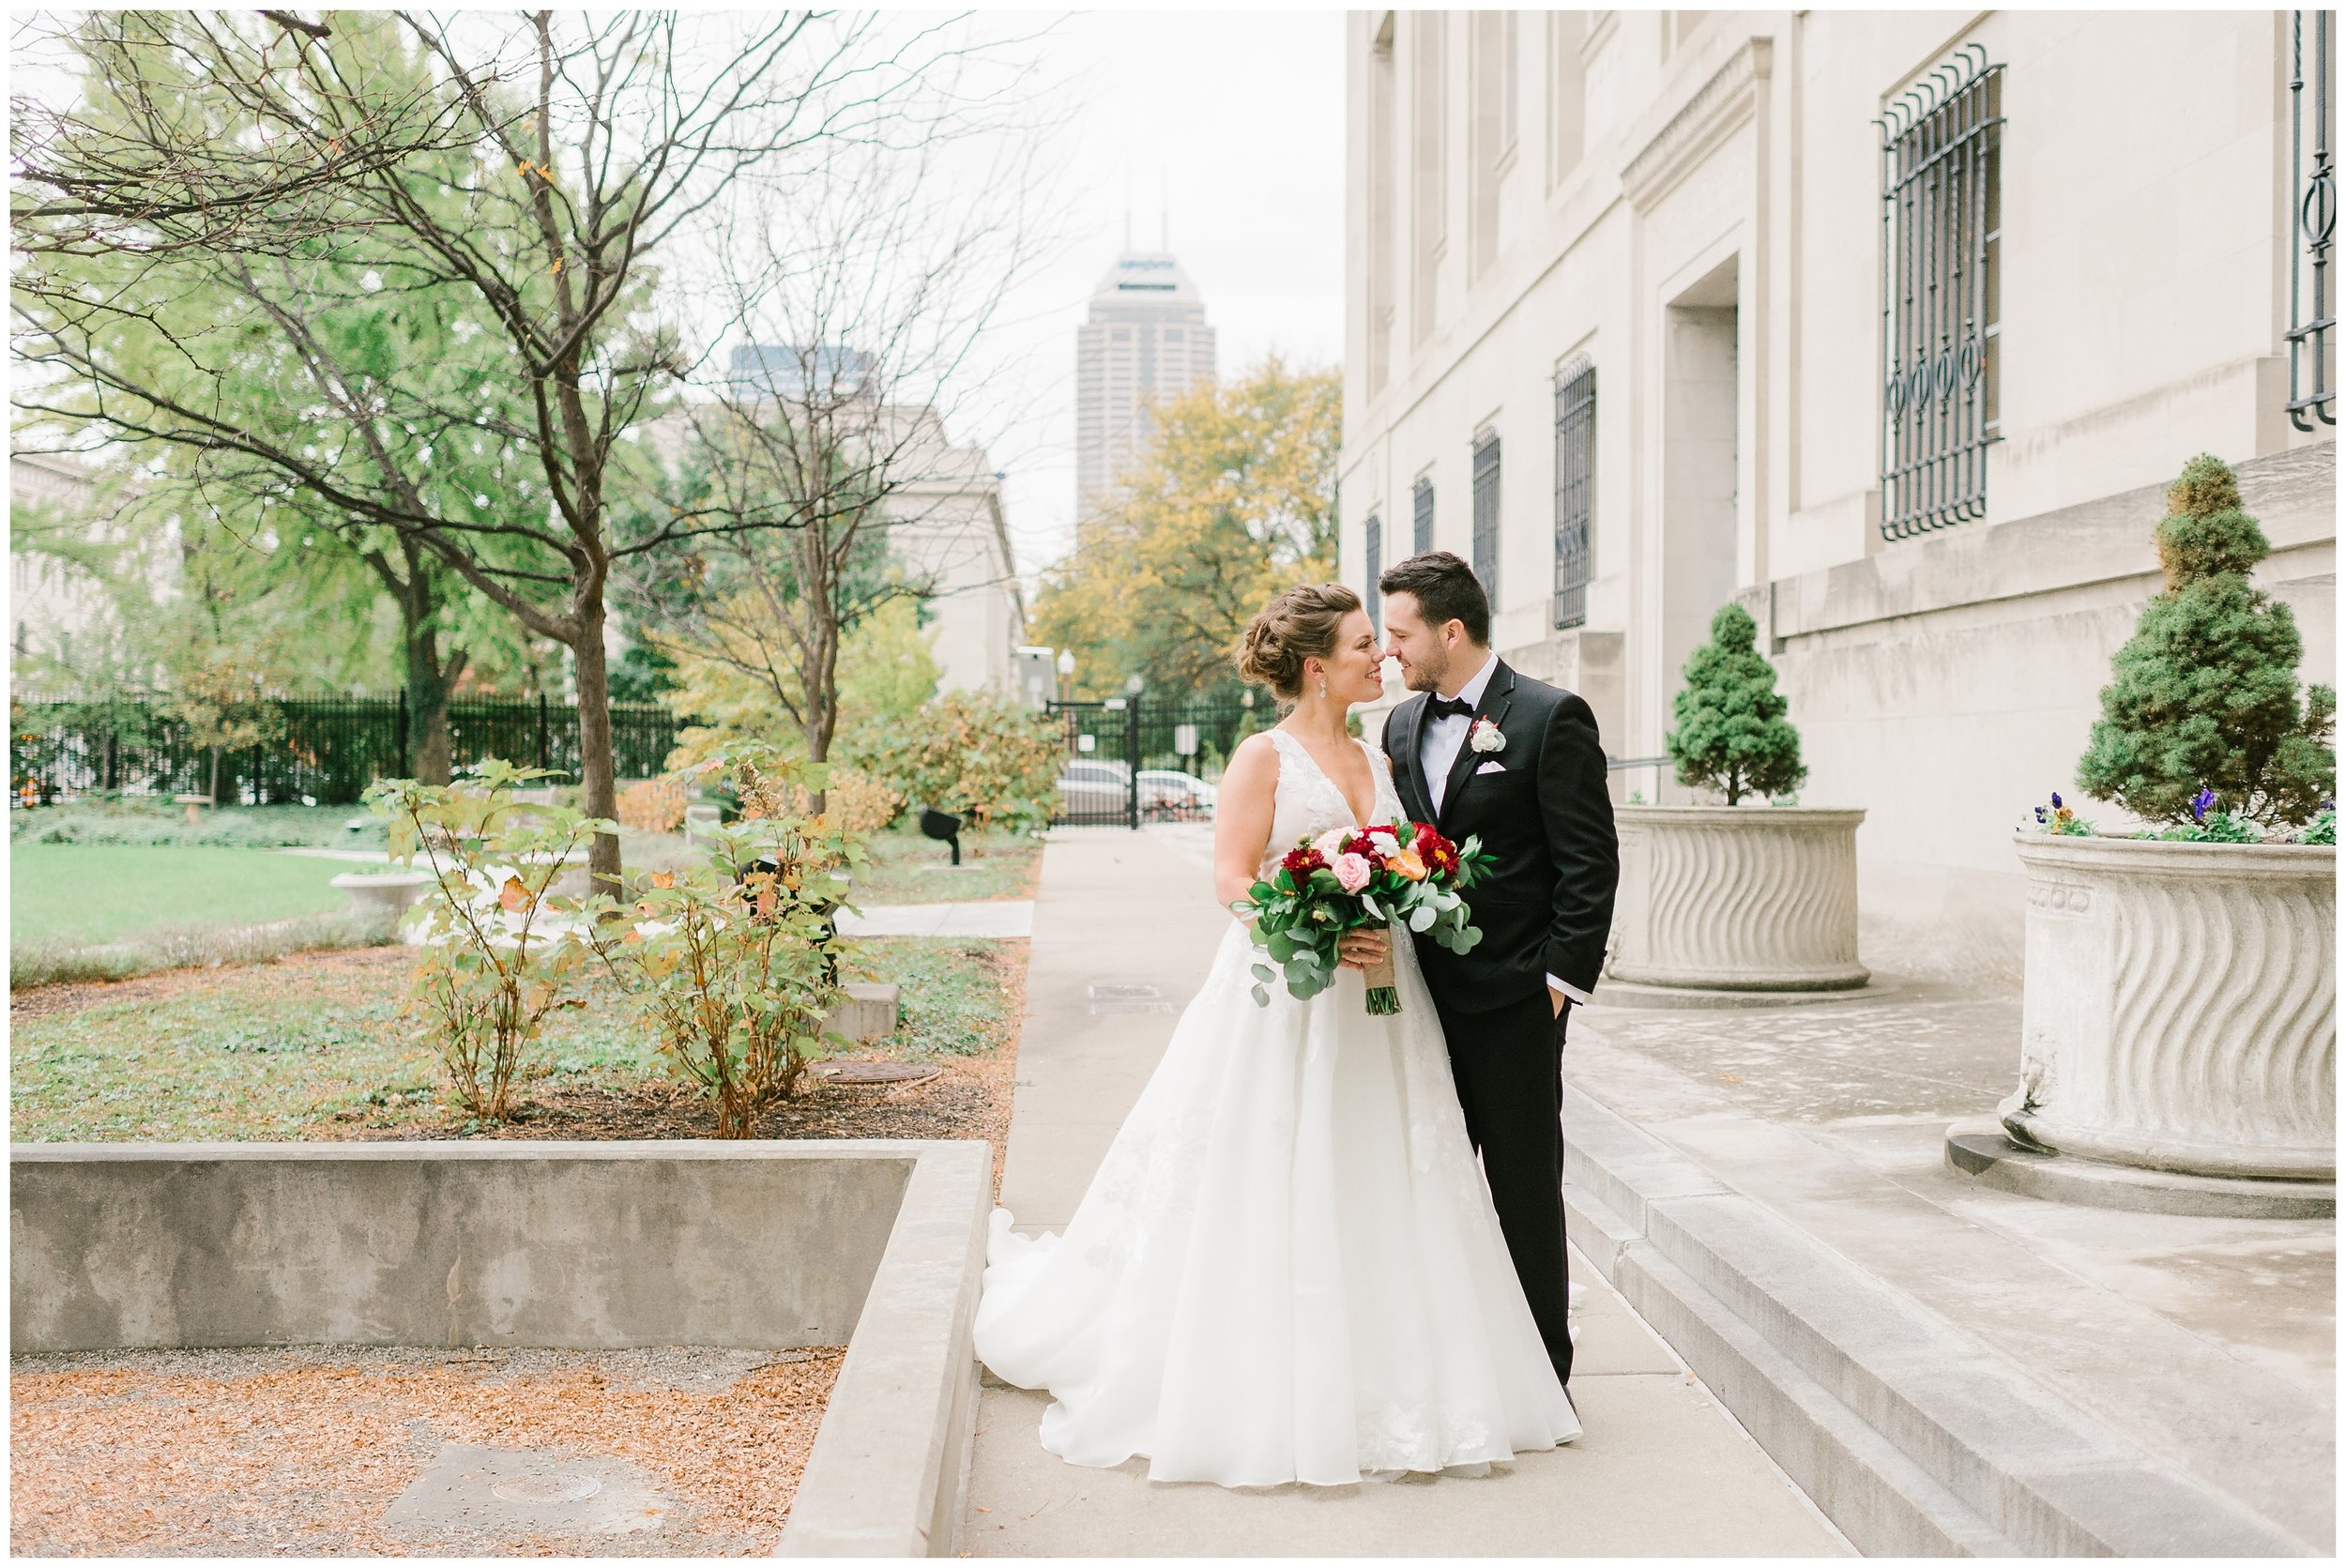 Rebecca_Shehorn_Photography_Indianapolis_Wedding_Photographer_7711.jpg